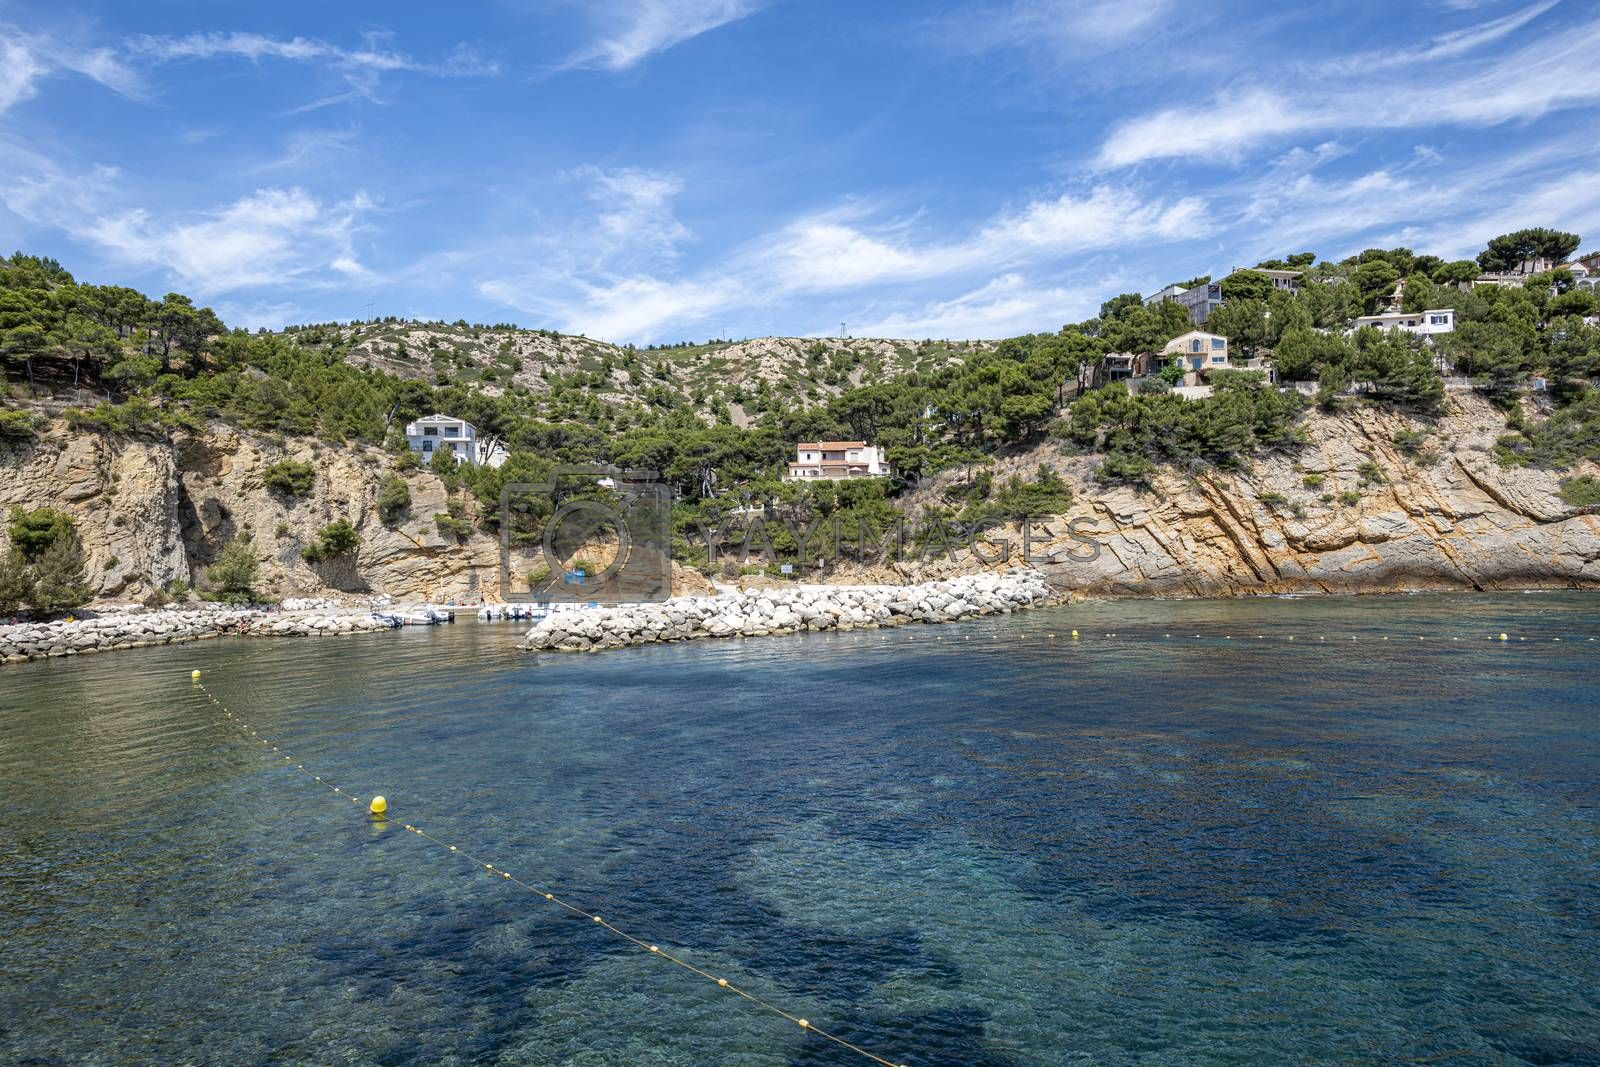 Port and and houses in the iconic Calanque of Figuieres ,creek and Figuières Cove in Méjean, South of France, Europe